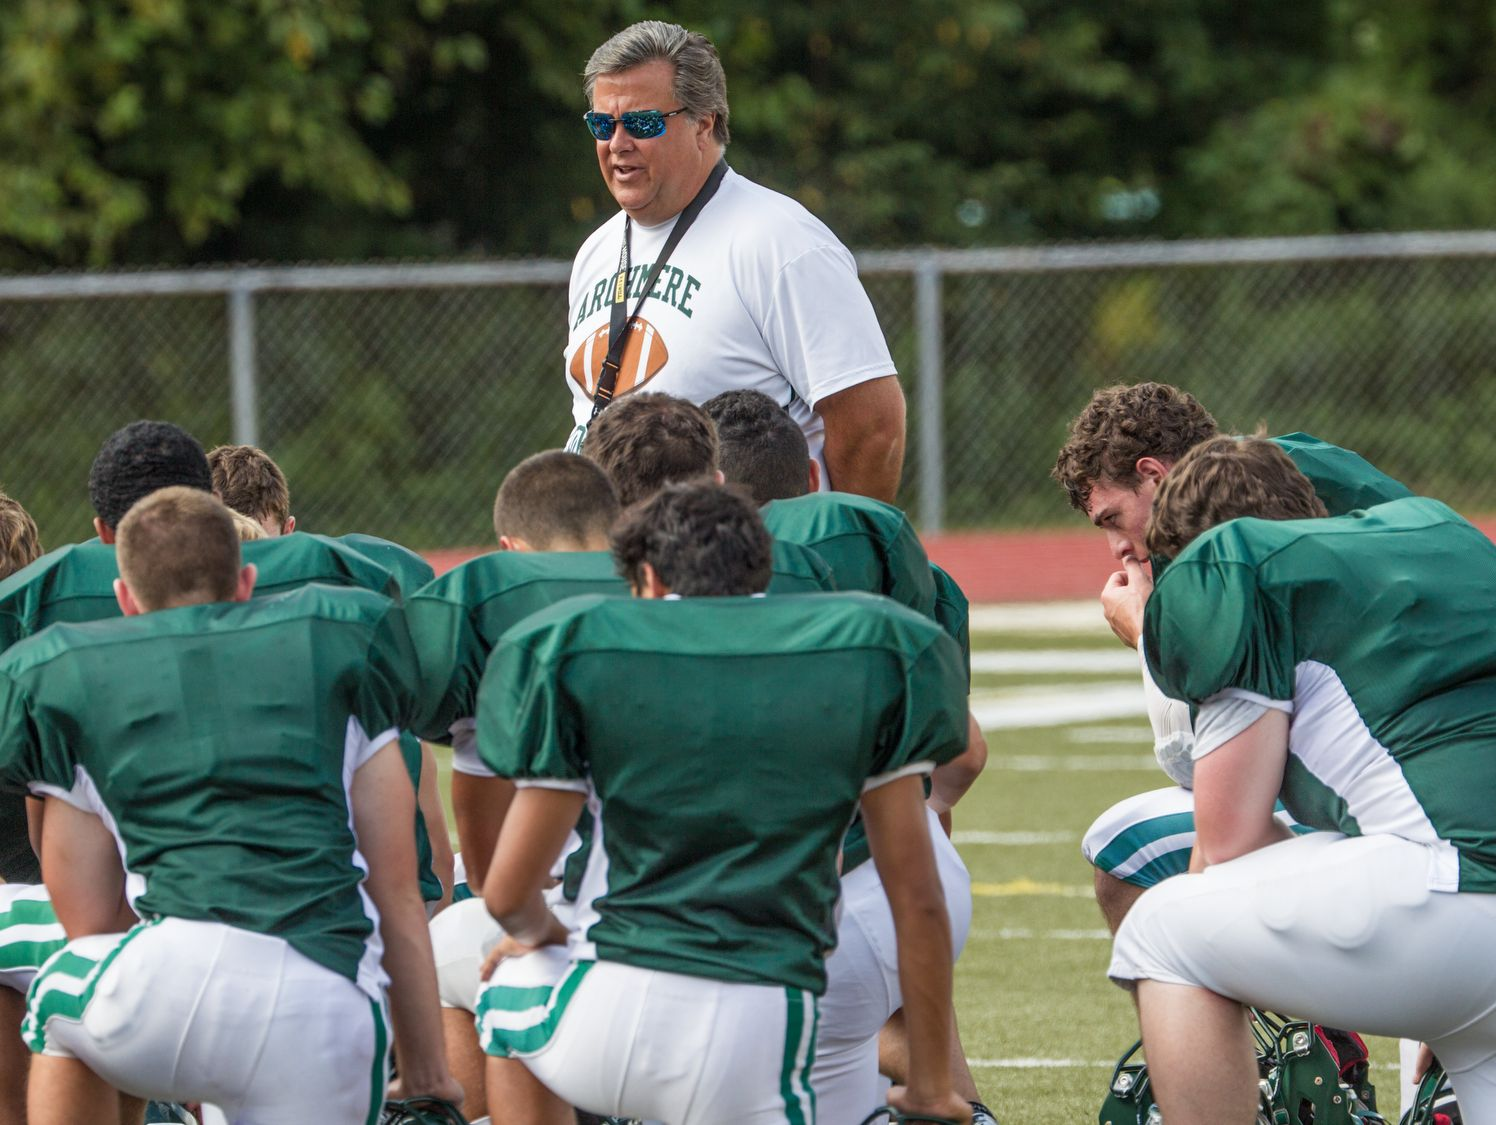 Jerry Ambrogi, shown here during a 2013 practice, earned 99 victories as Archmere's football coach and contributed countless resources to the school.